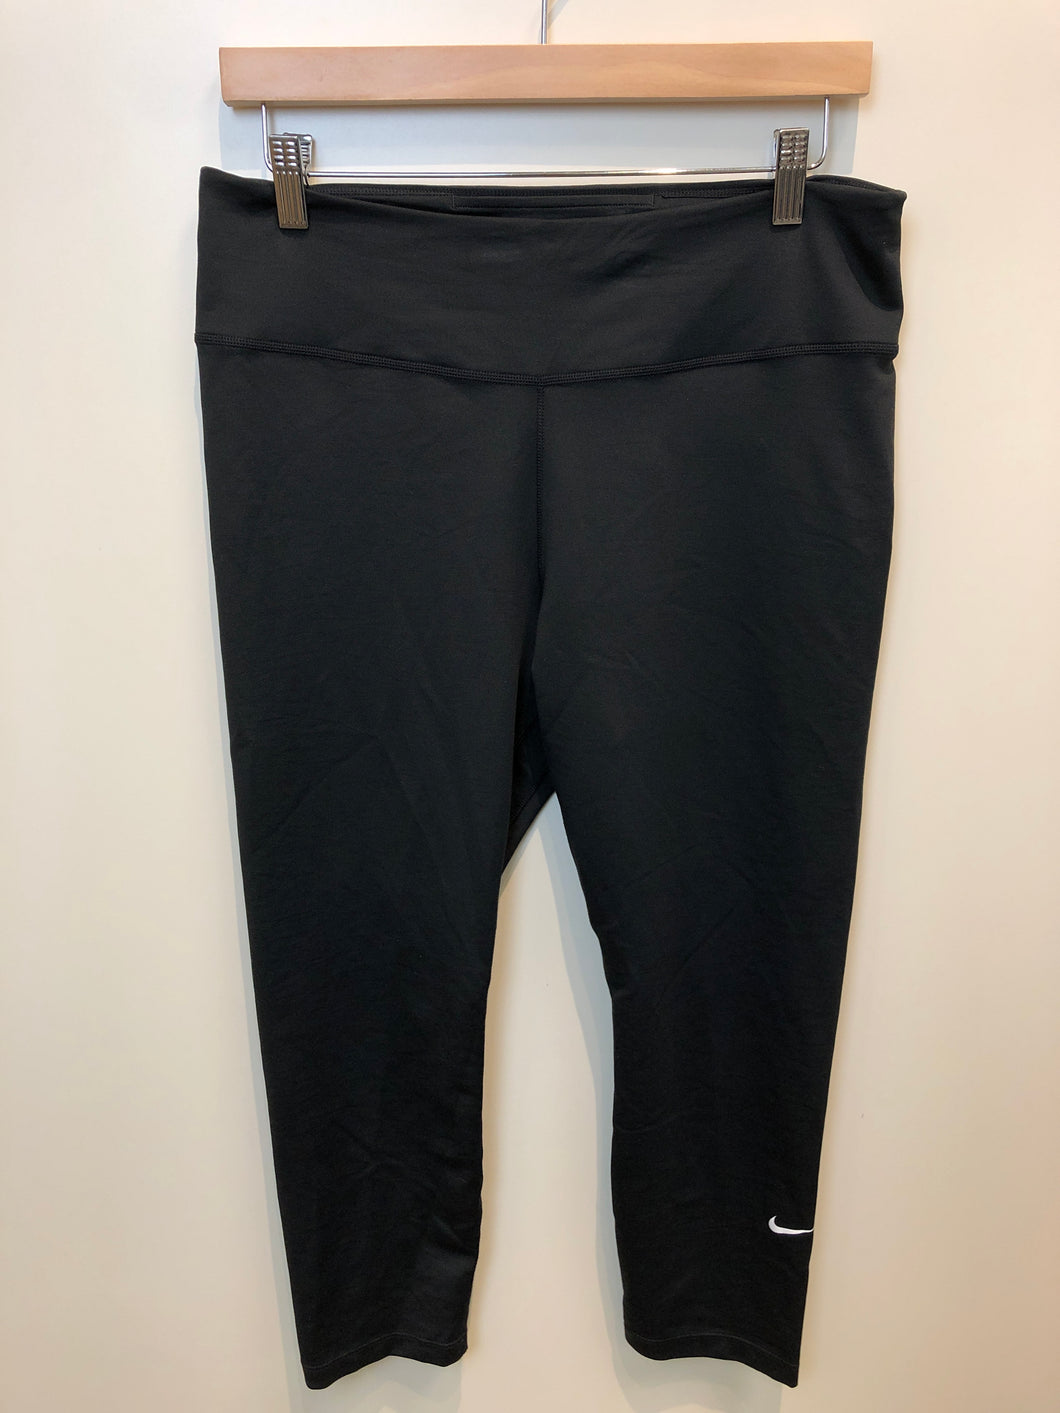 Nike Dri Fit Athletic Pants Size Extra Large